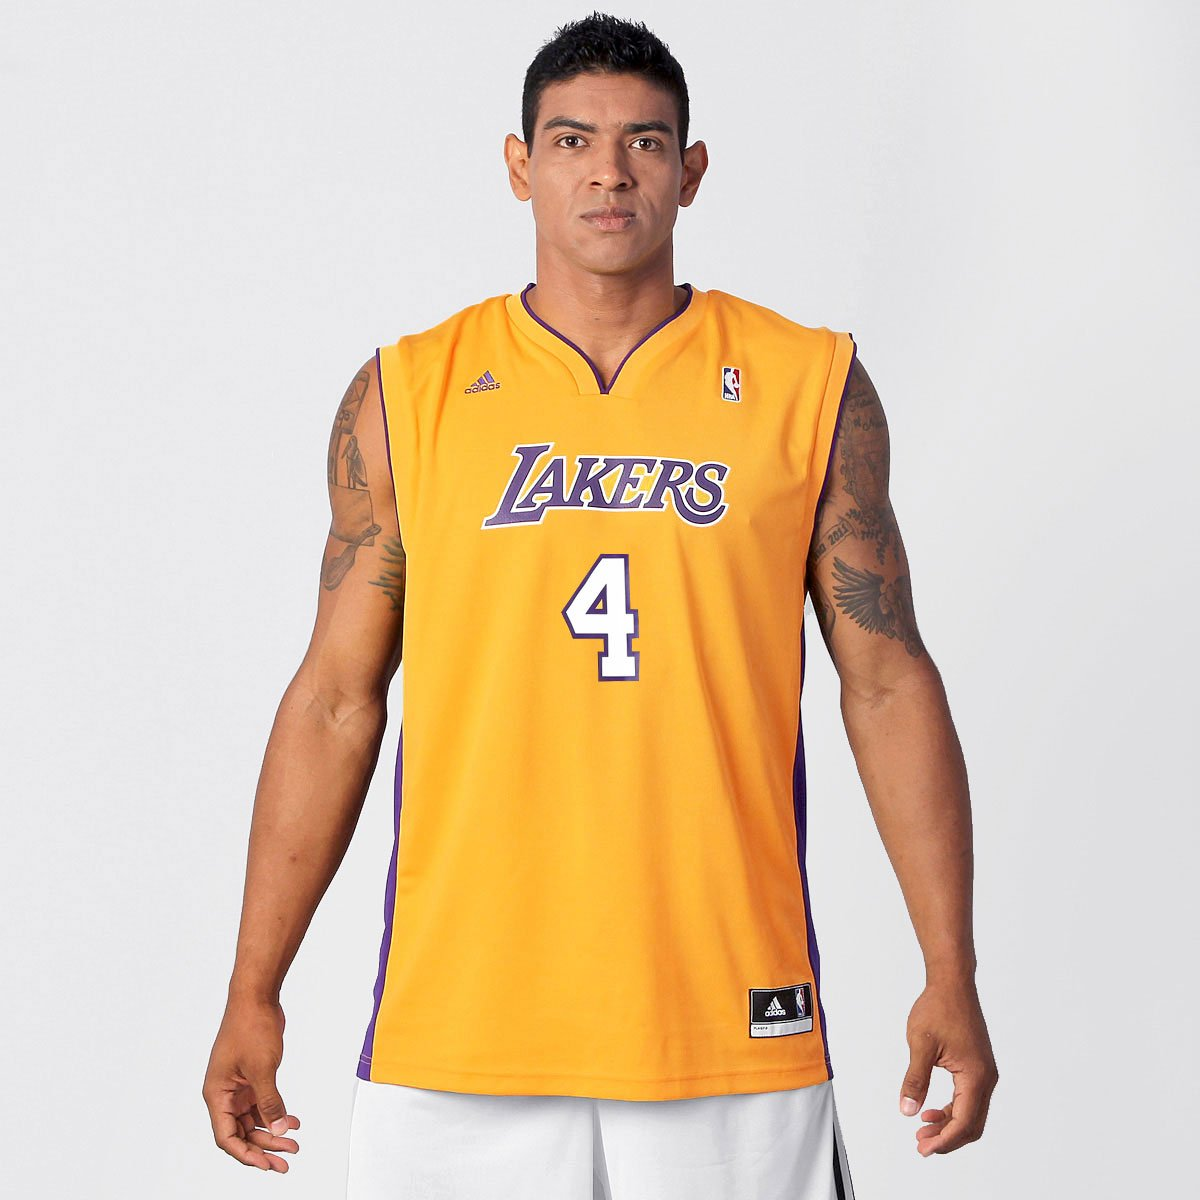 6ea239d57c Camiseta Regata Adidas Los Angeles Lakers Home - Huertas nº 4 - Compre  Agora